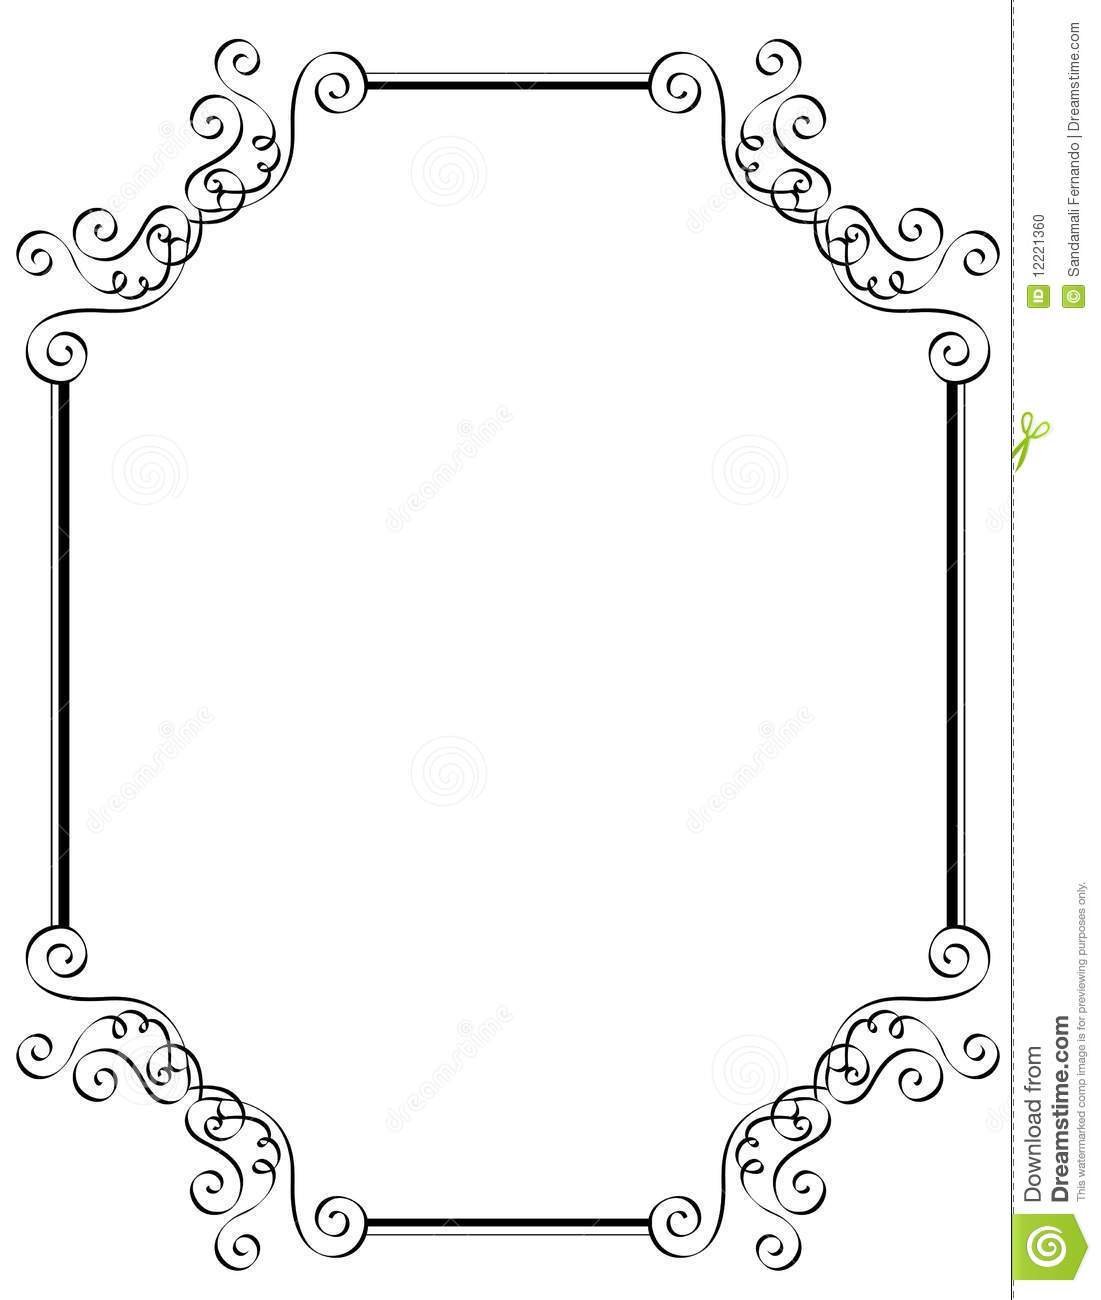 Free printable wedding clipart borders 2 » Clipart Portal.